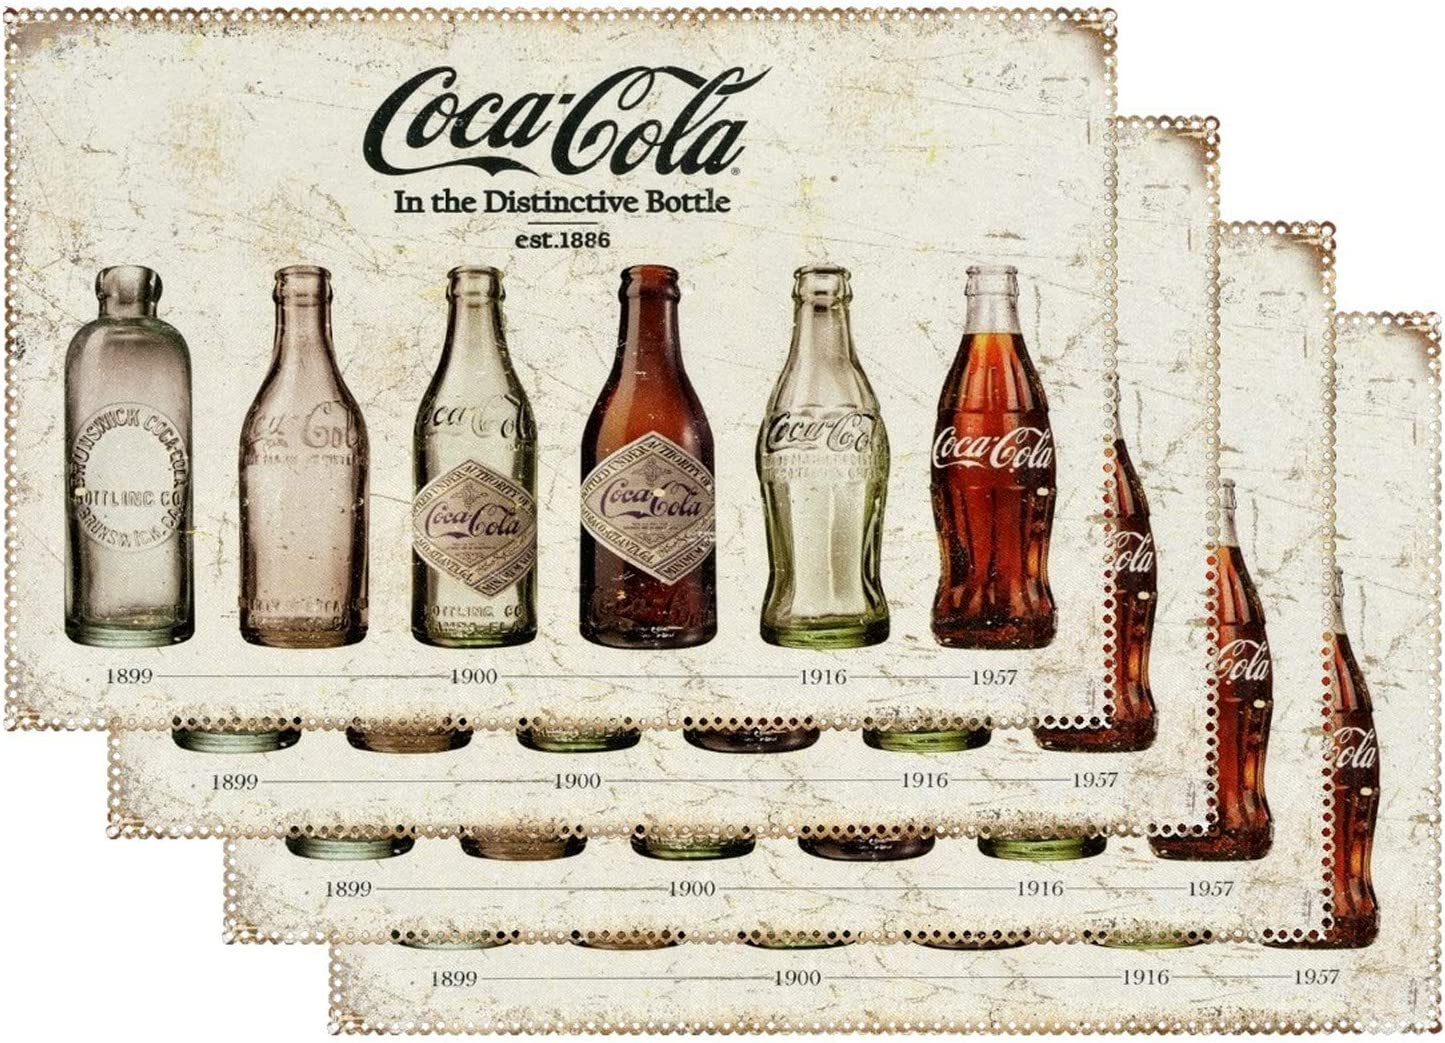 Kitchen Table Placemats for service Outdoor Cola Dining Max 73% OFF Coca